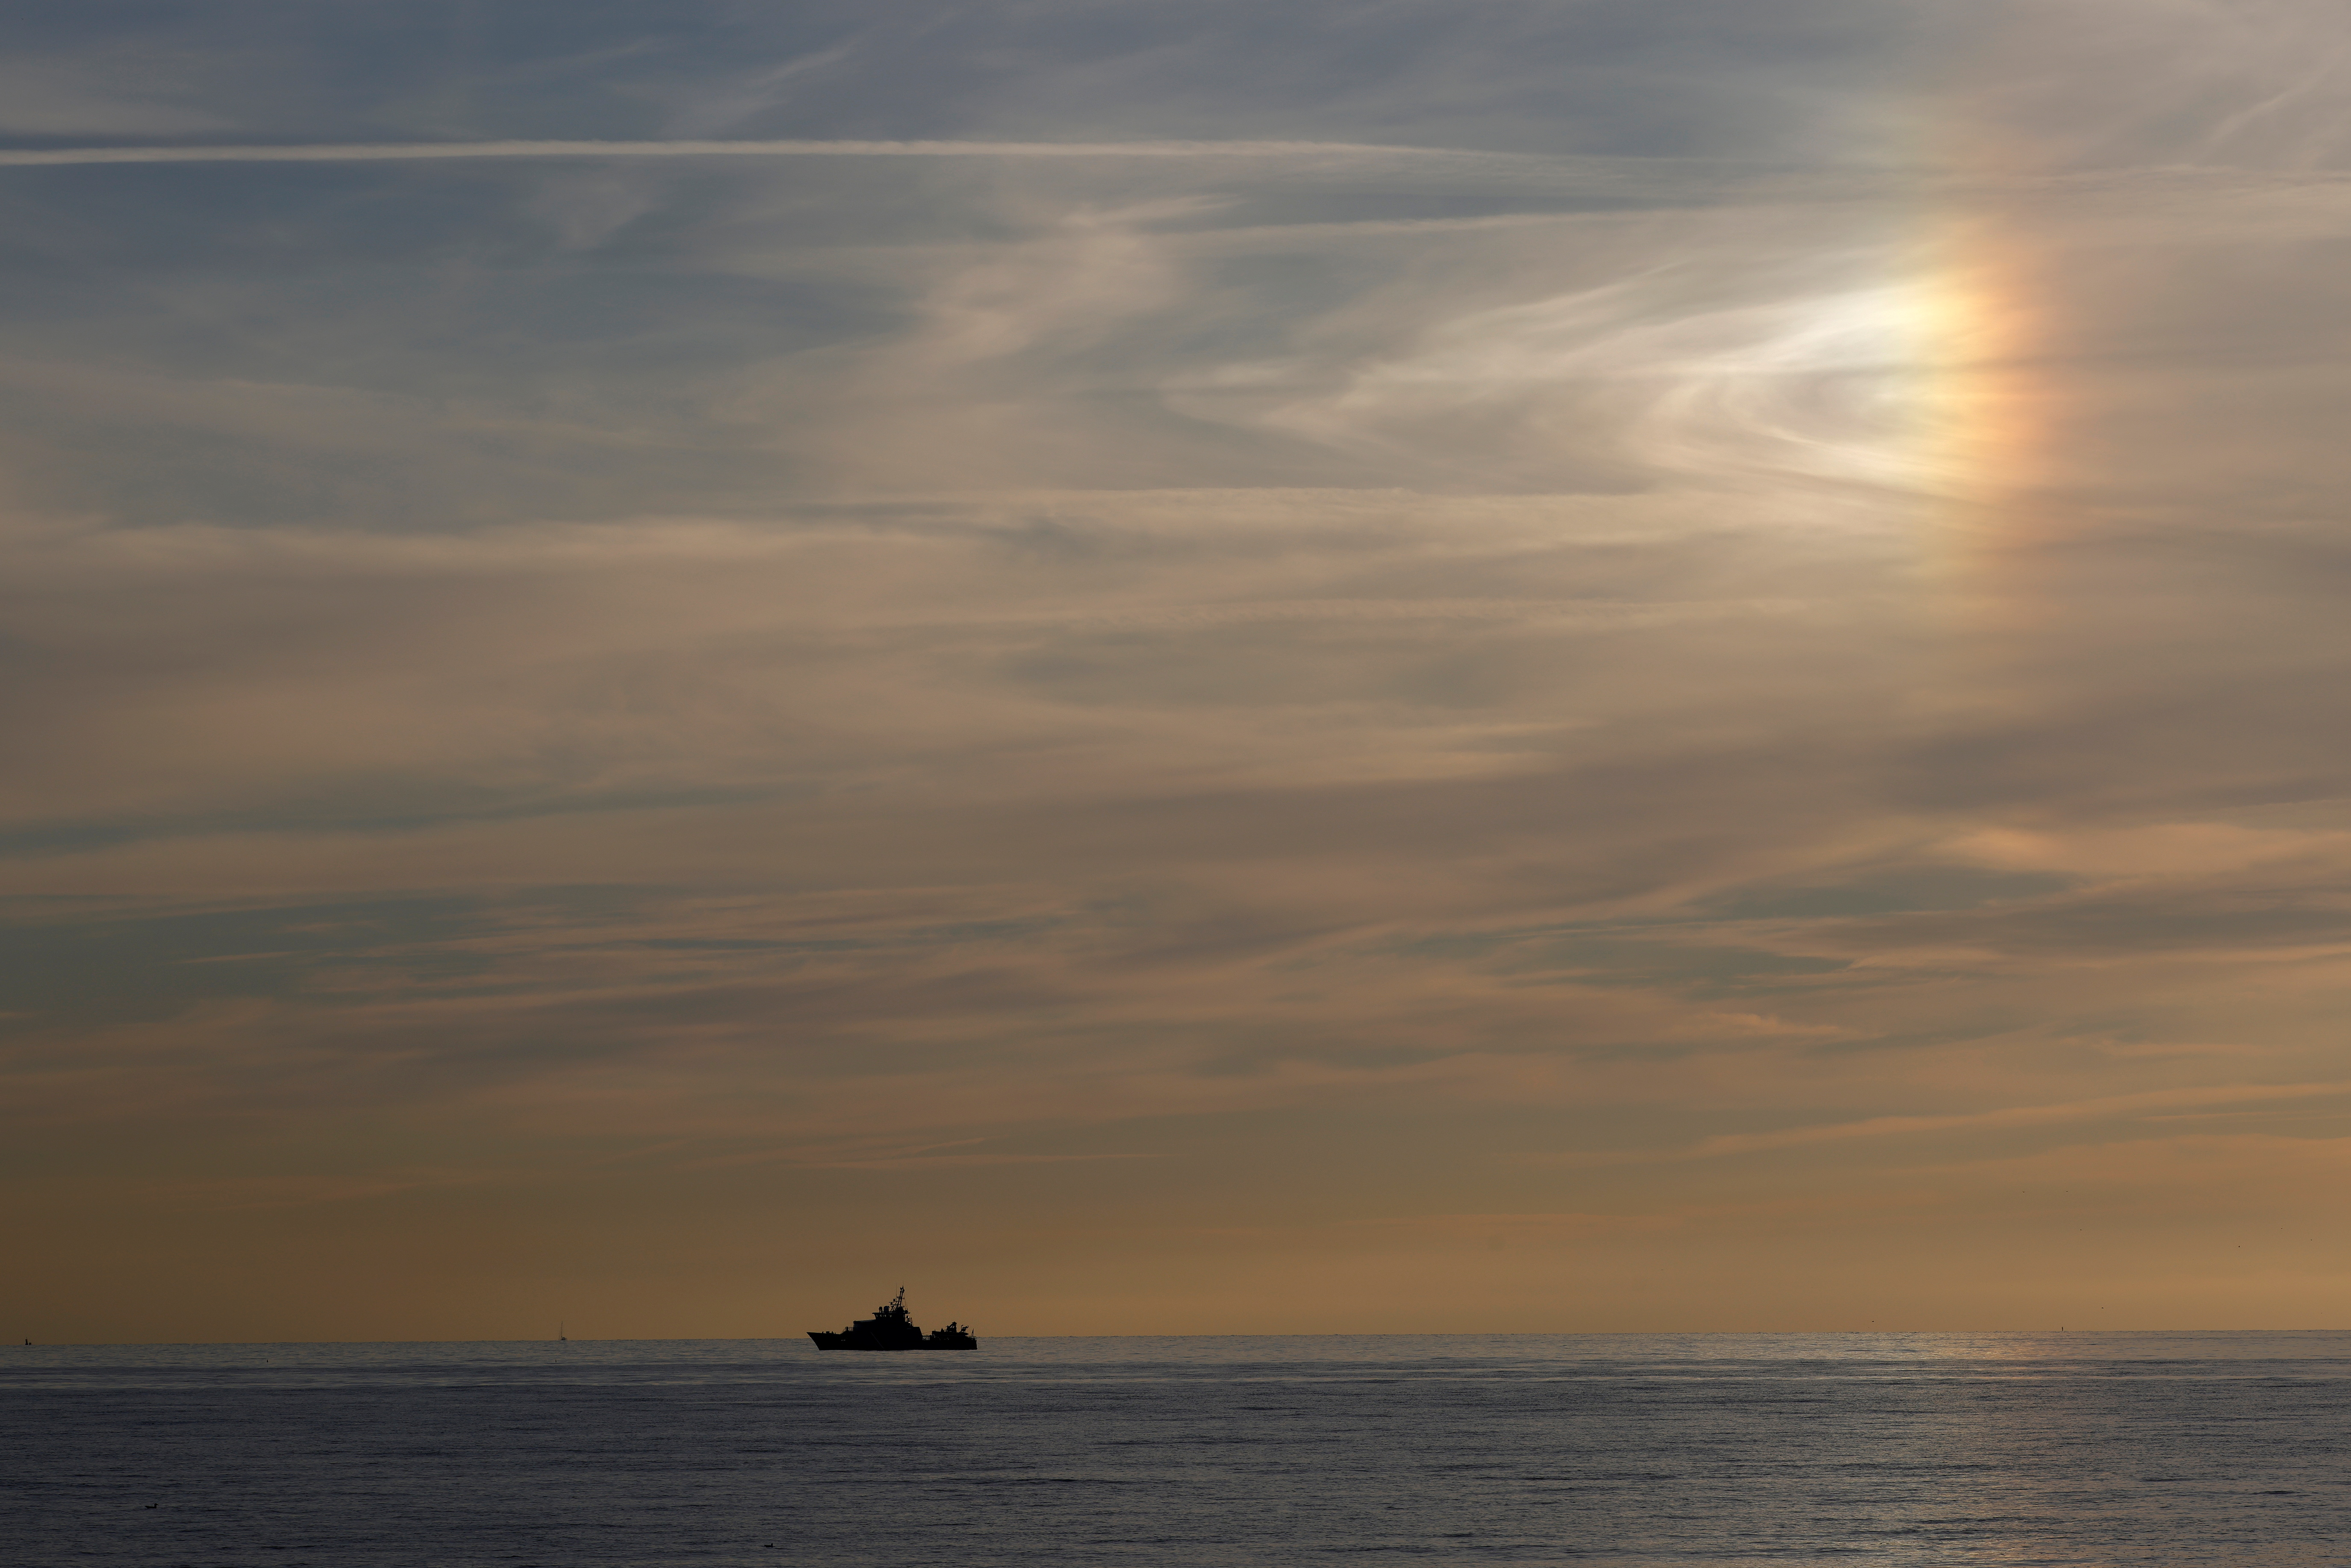 A coast guard boat patrols along the French coast in Wimereux, France, September 12, 2021. REUTERS/Pascal Rossignol